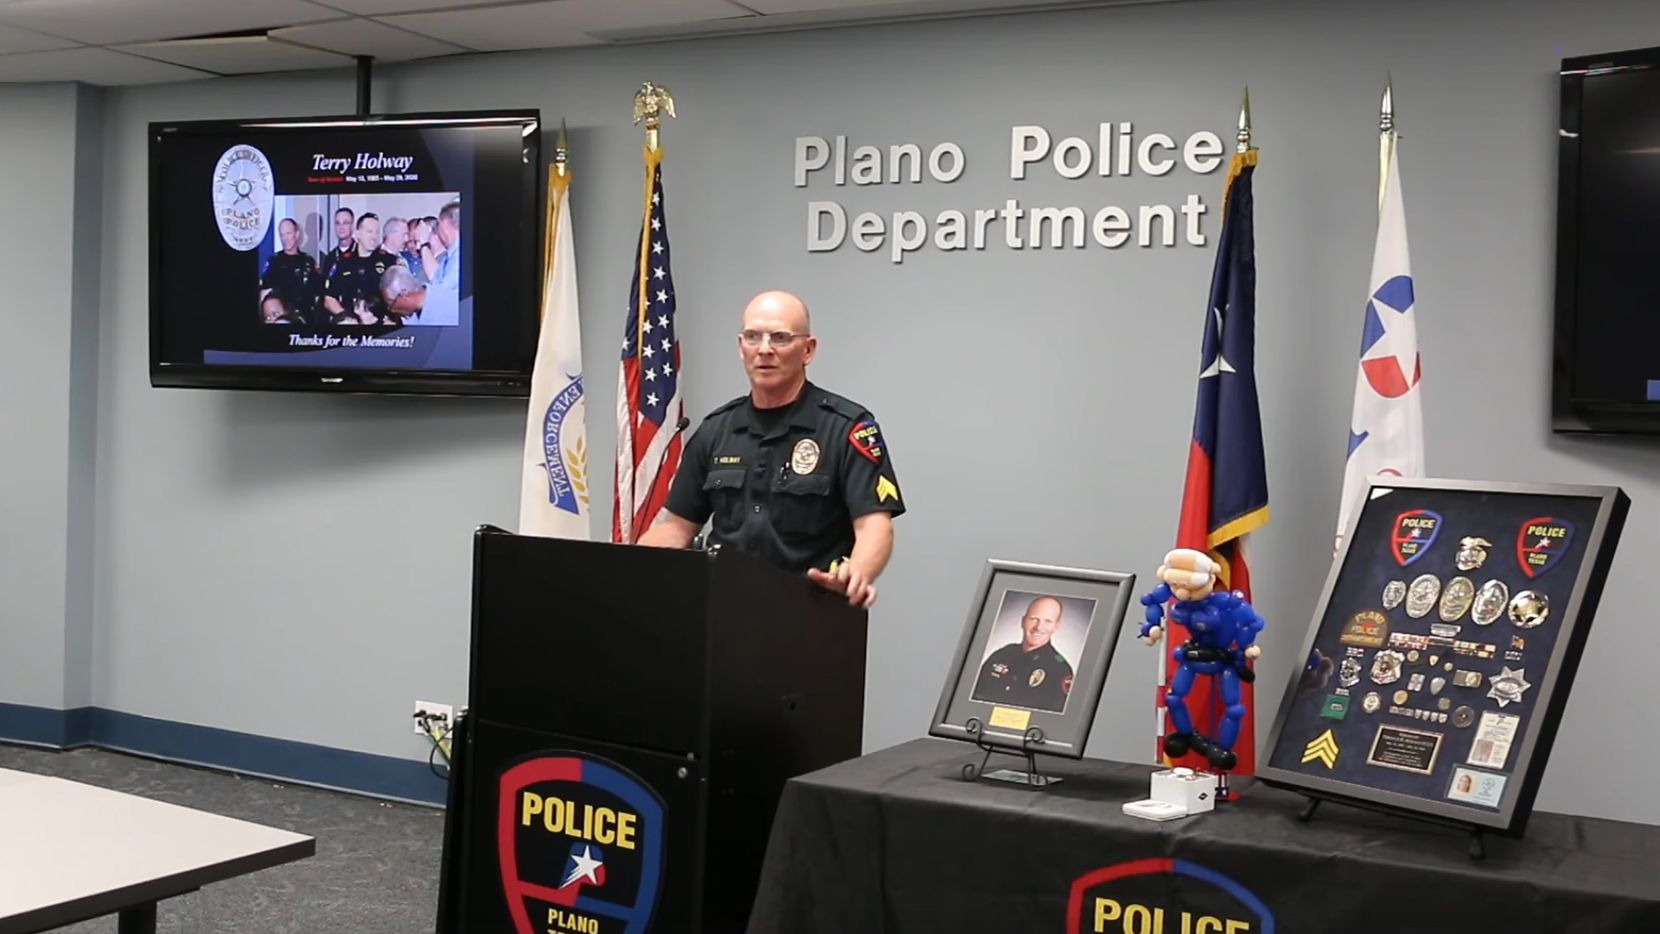 Plano Police Sgt. Terry Holway talks about his retirement.